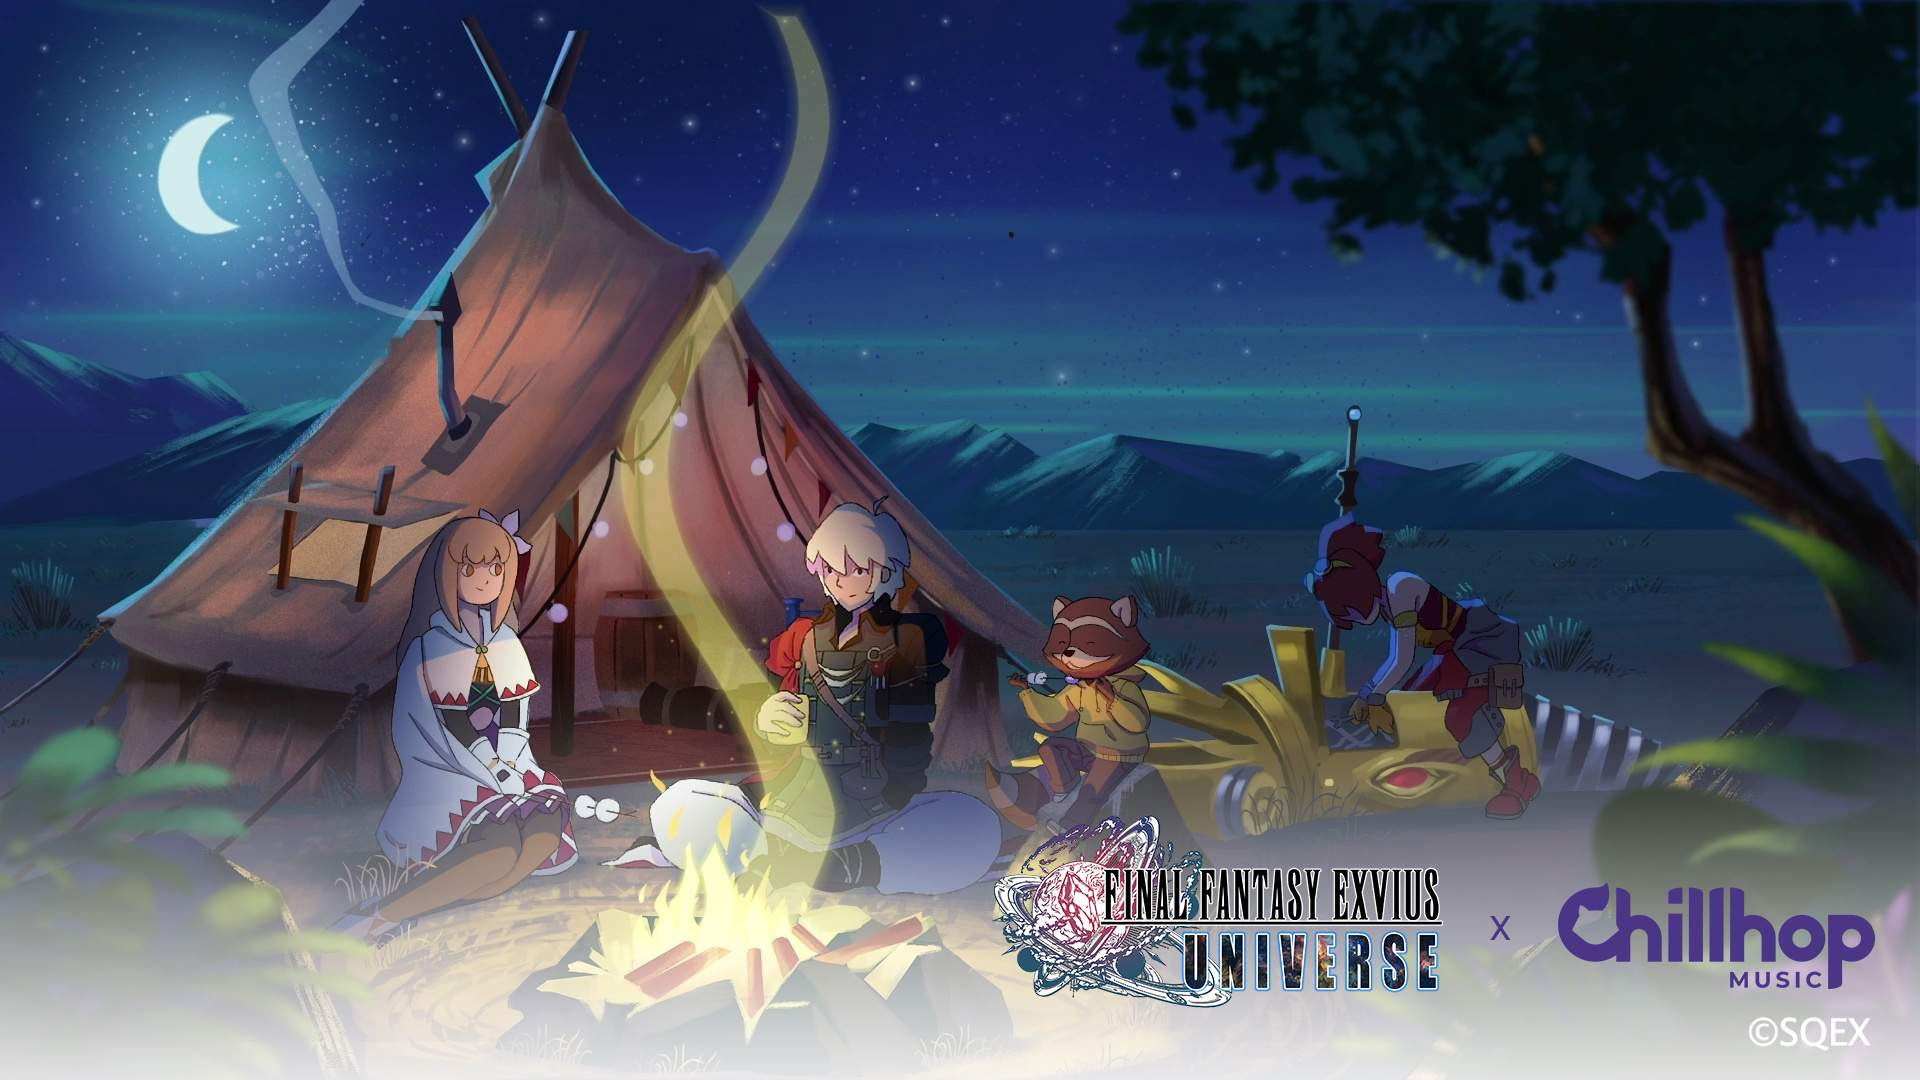 Fina, Rain, and Lid from FINAL FANTASY BRAVE EXVIUS sit at campfire with The Chillhop Music Raccoon